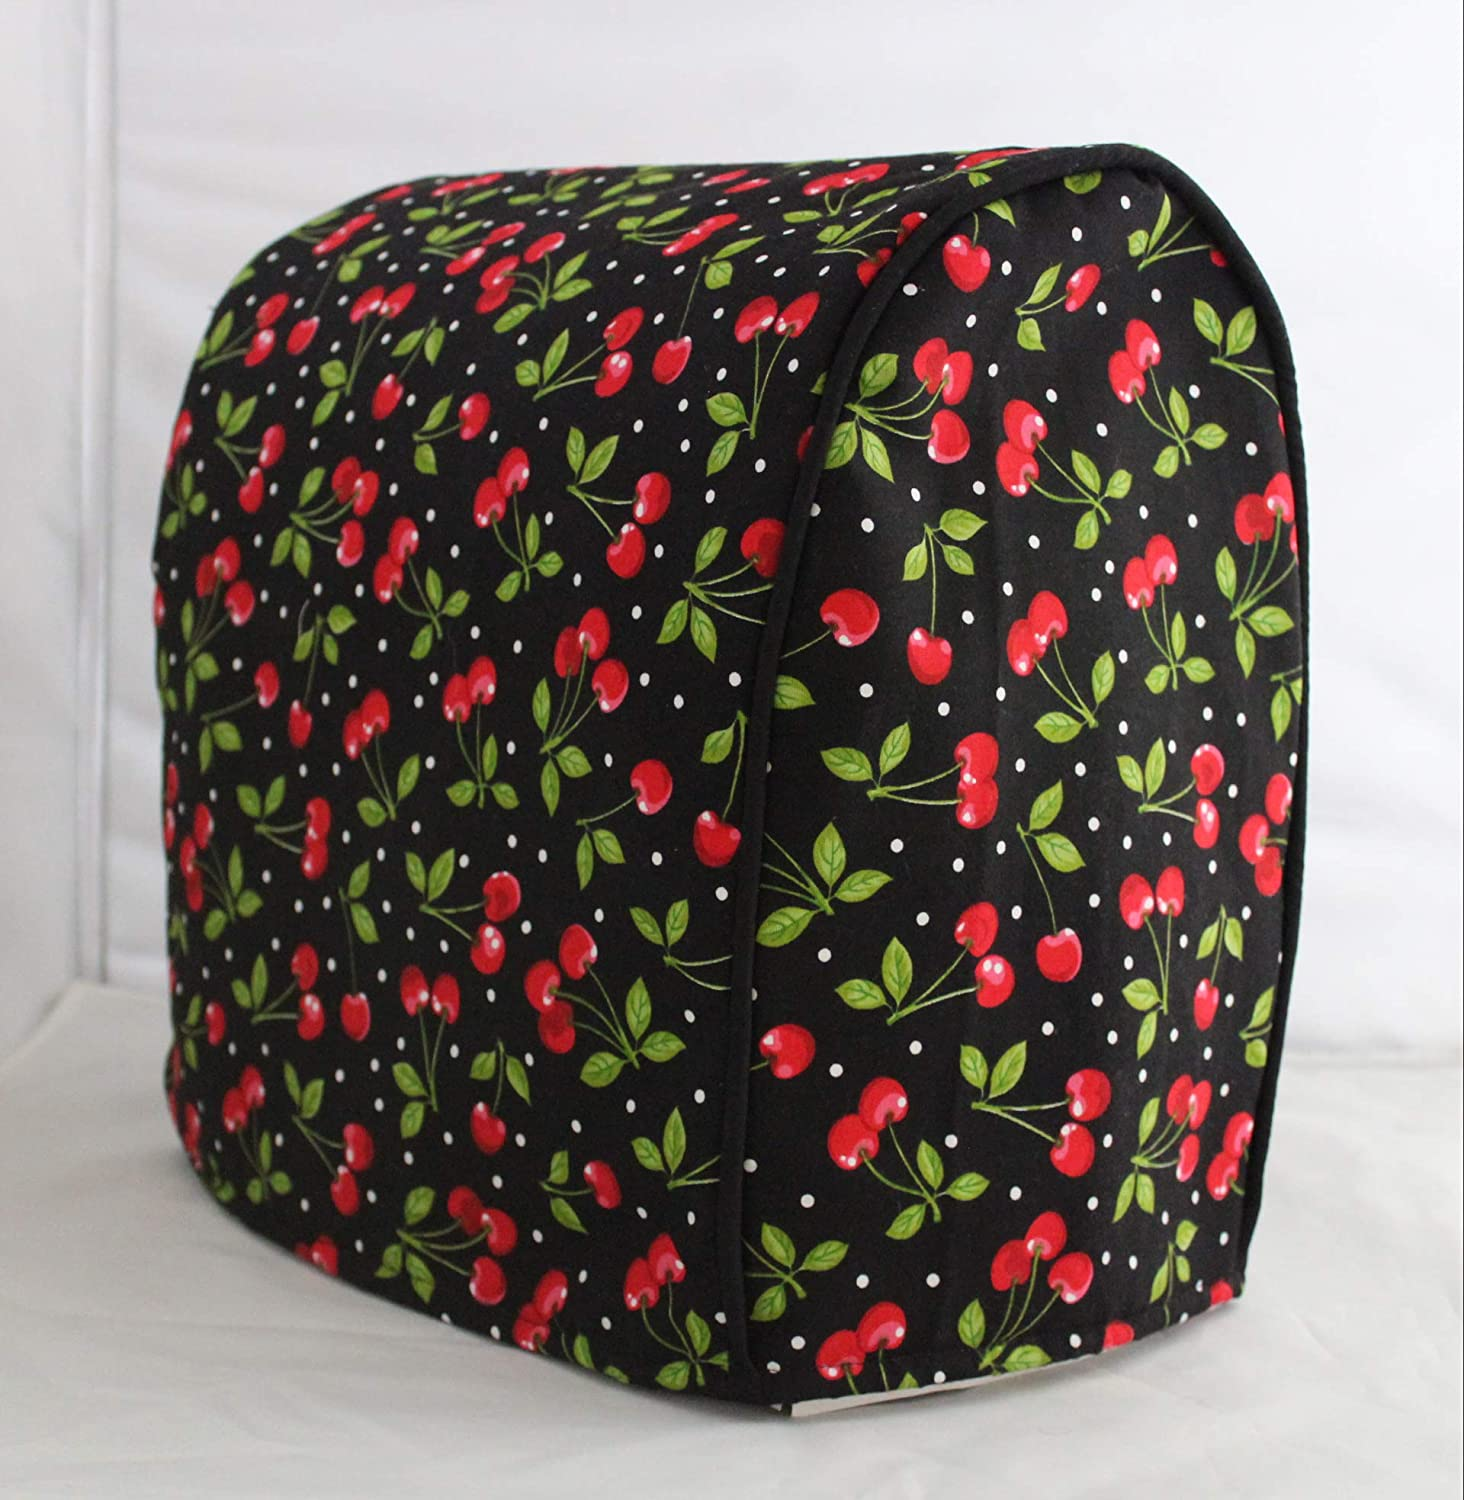 Simple Home Inspirations Premium Cotton Cover Compatible with Sunbeam Mixmaster (Cherries Jubilee)